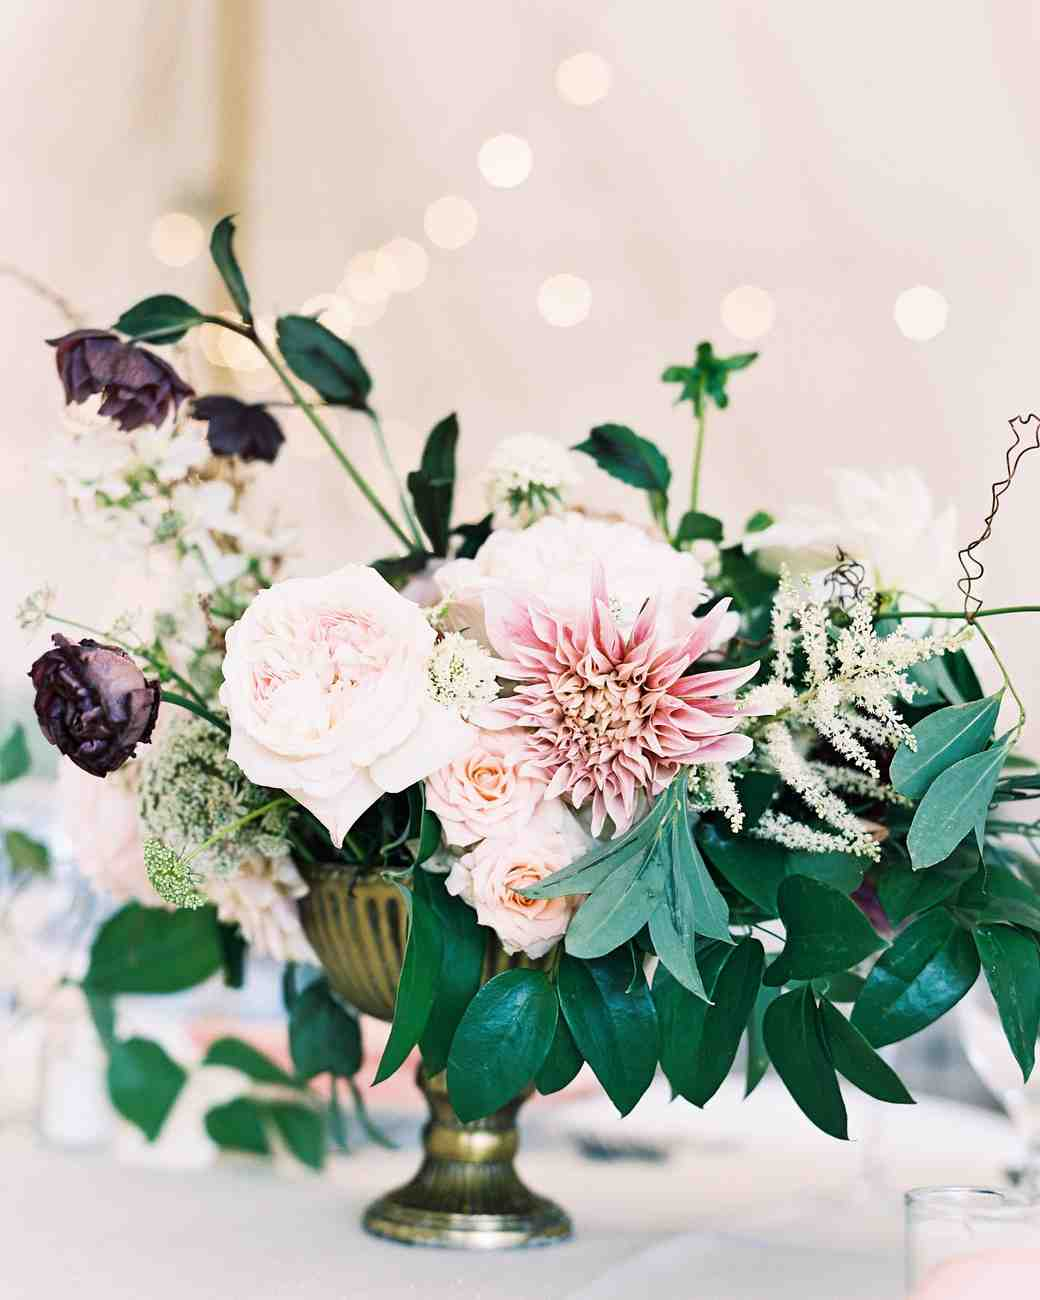 Wedding Flower Center Pieces: Stunning Summer Centerpieces Using In-Season Flowers